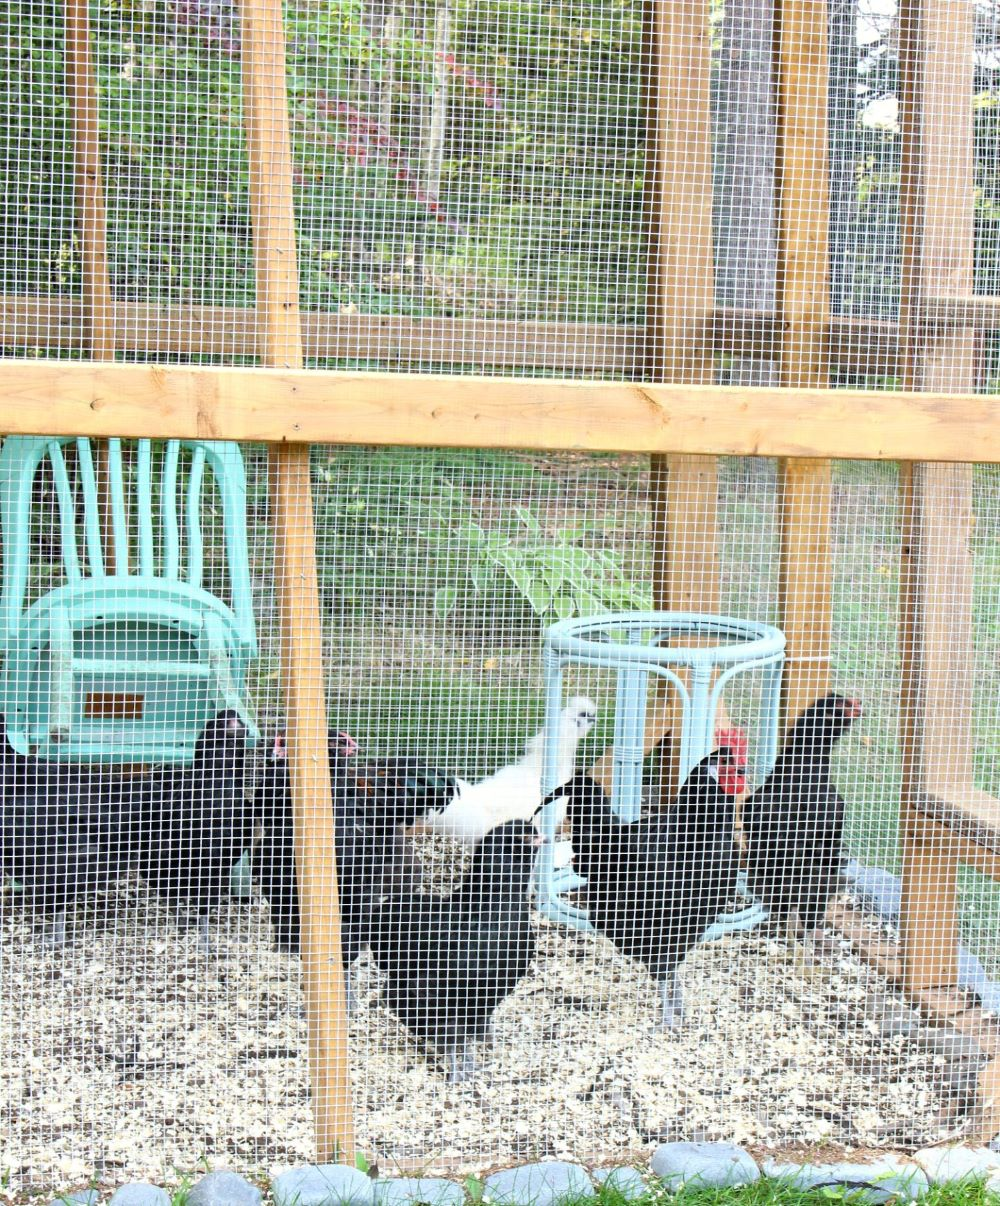 Chicken Run for Small Spaces